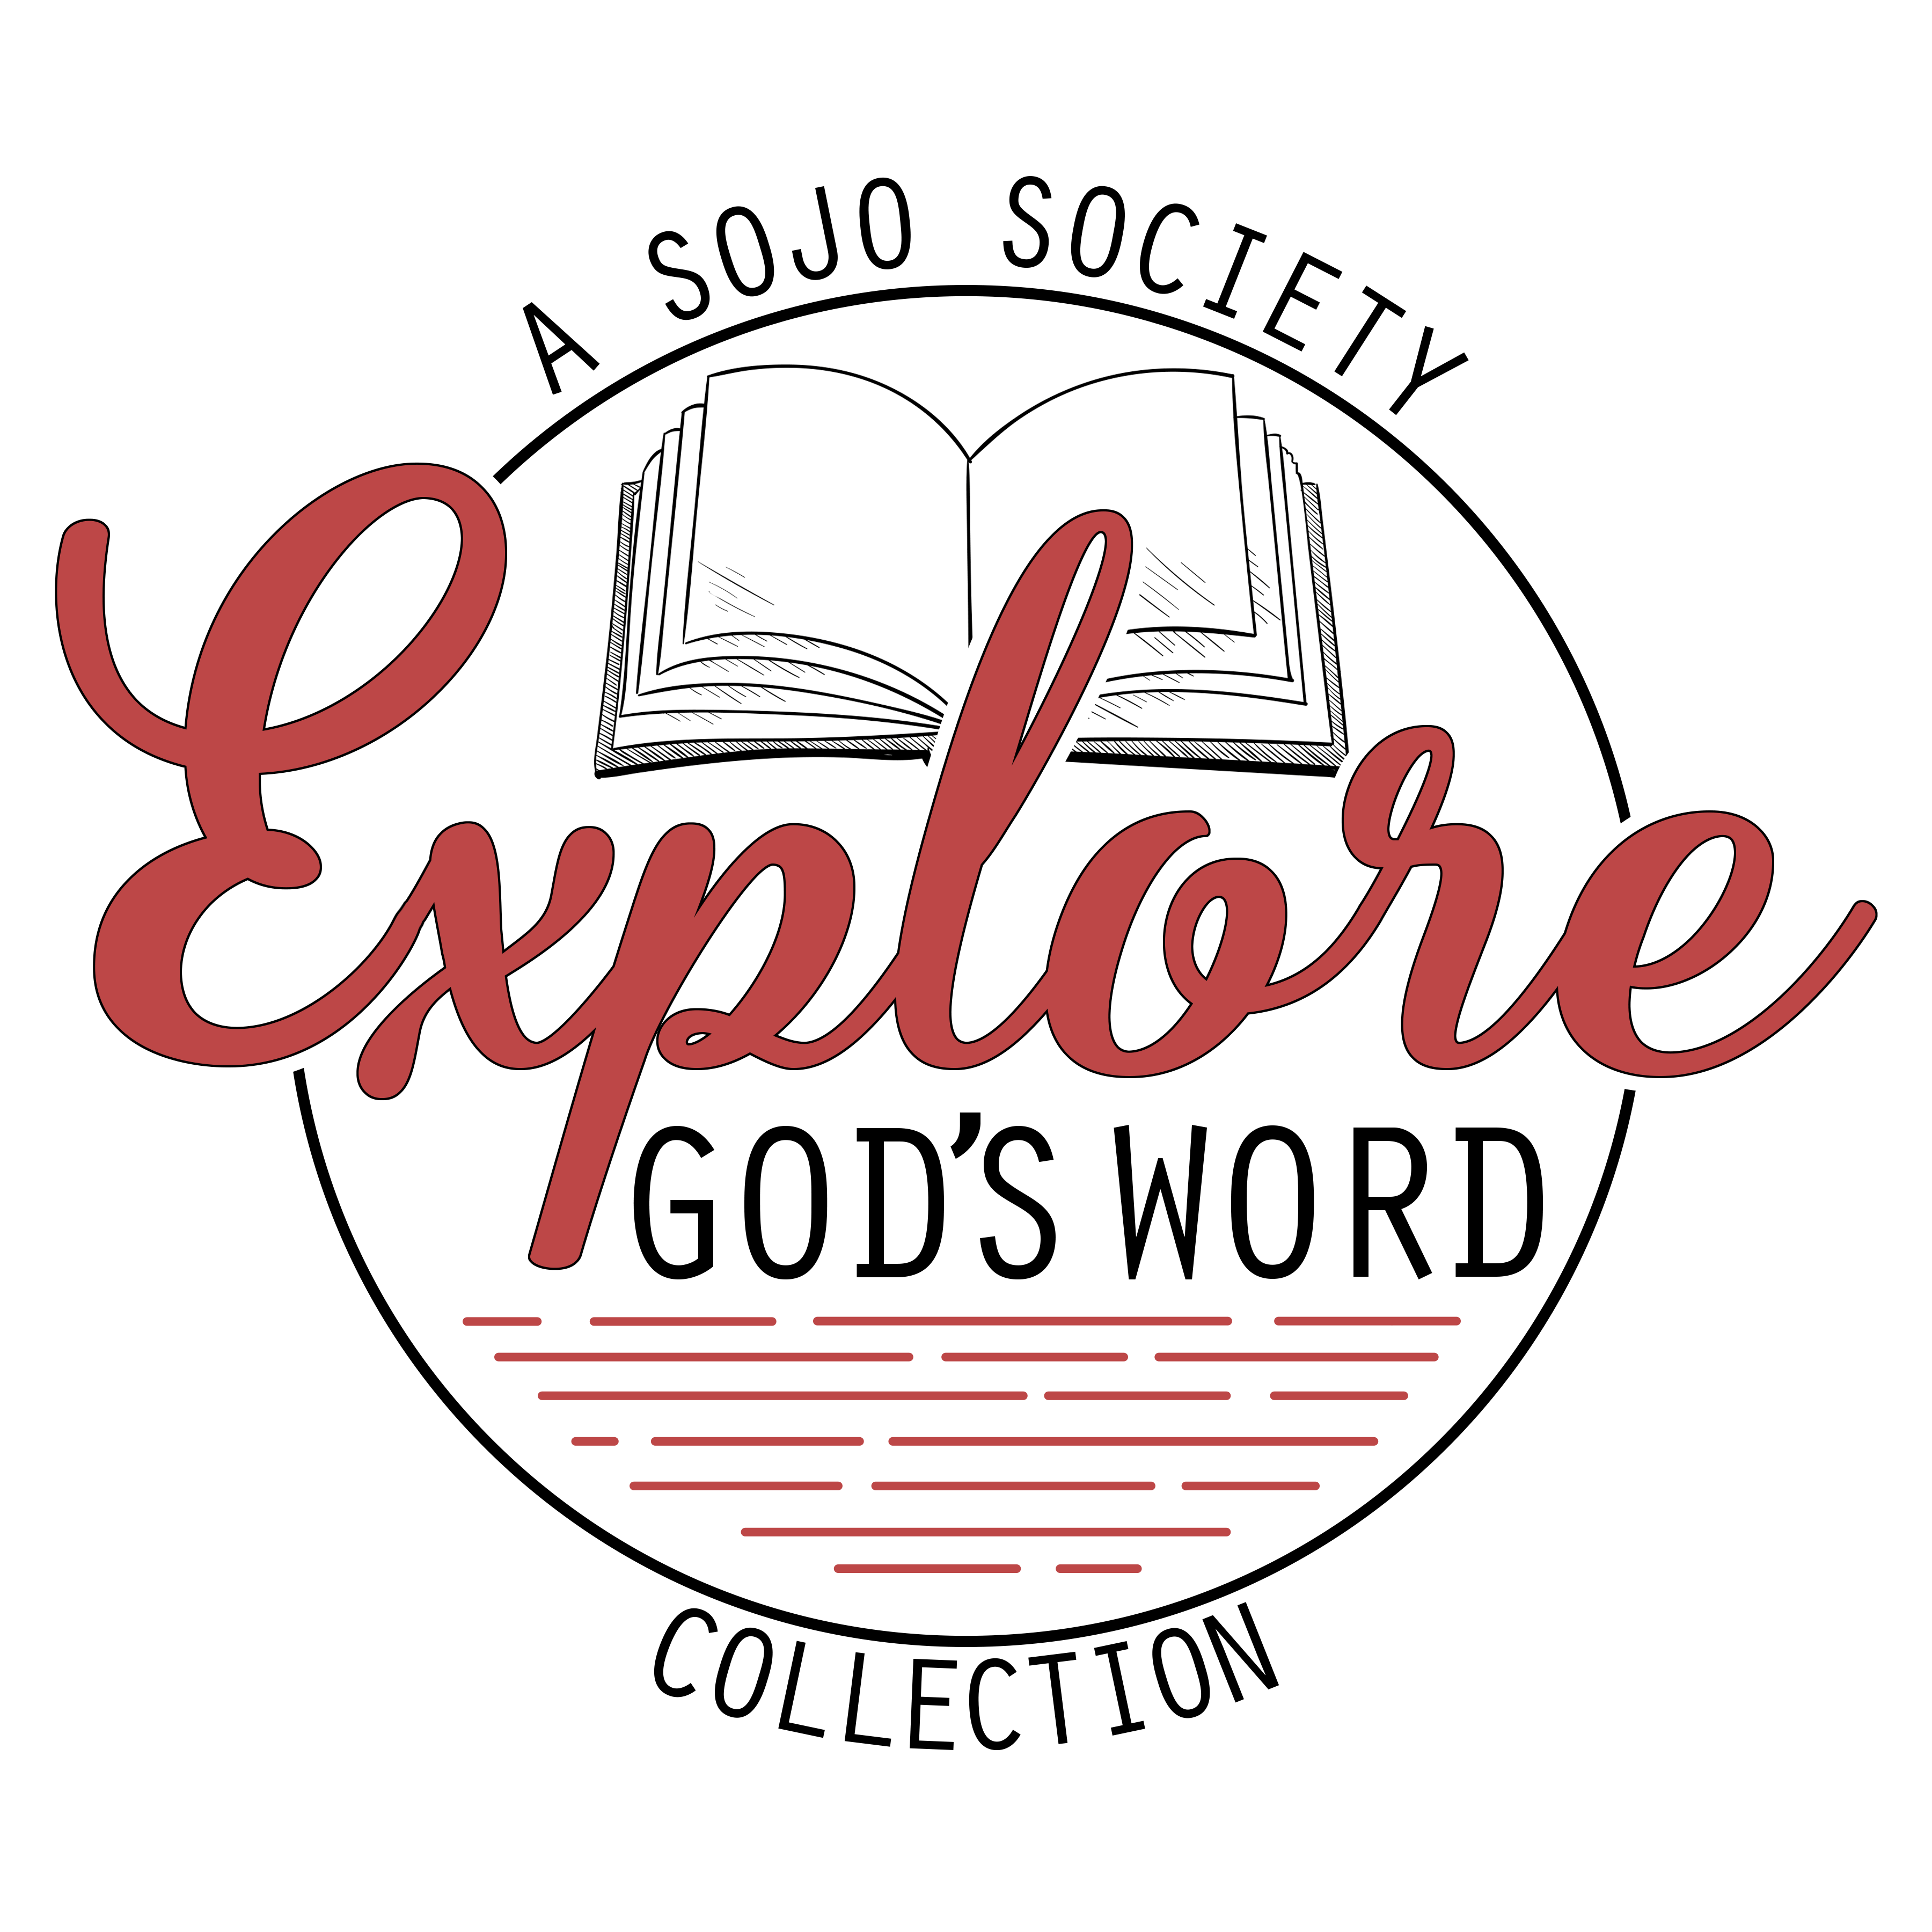 explore god's word red logo